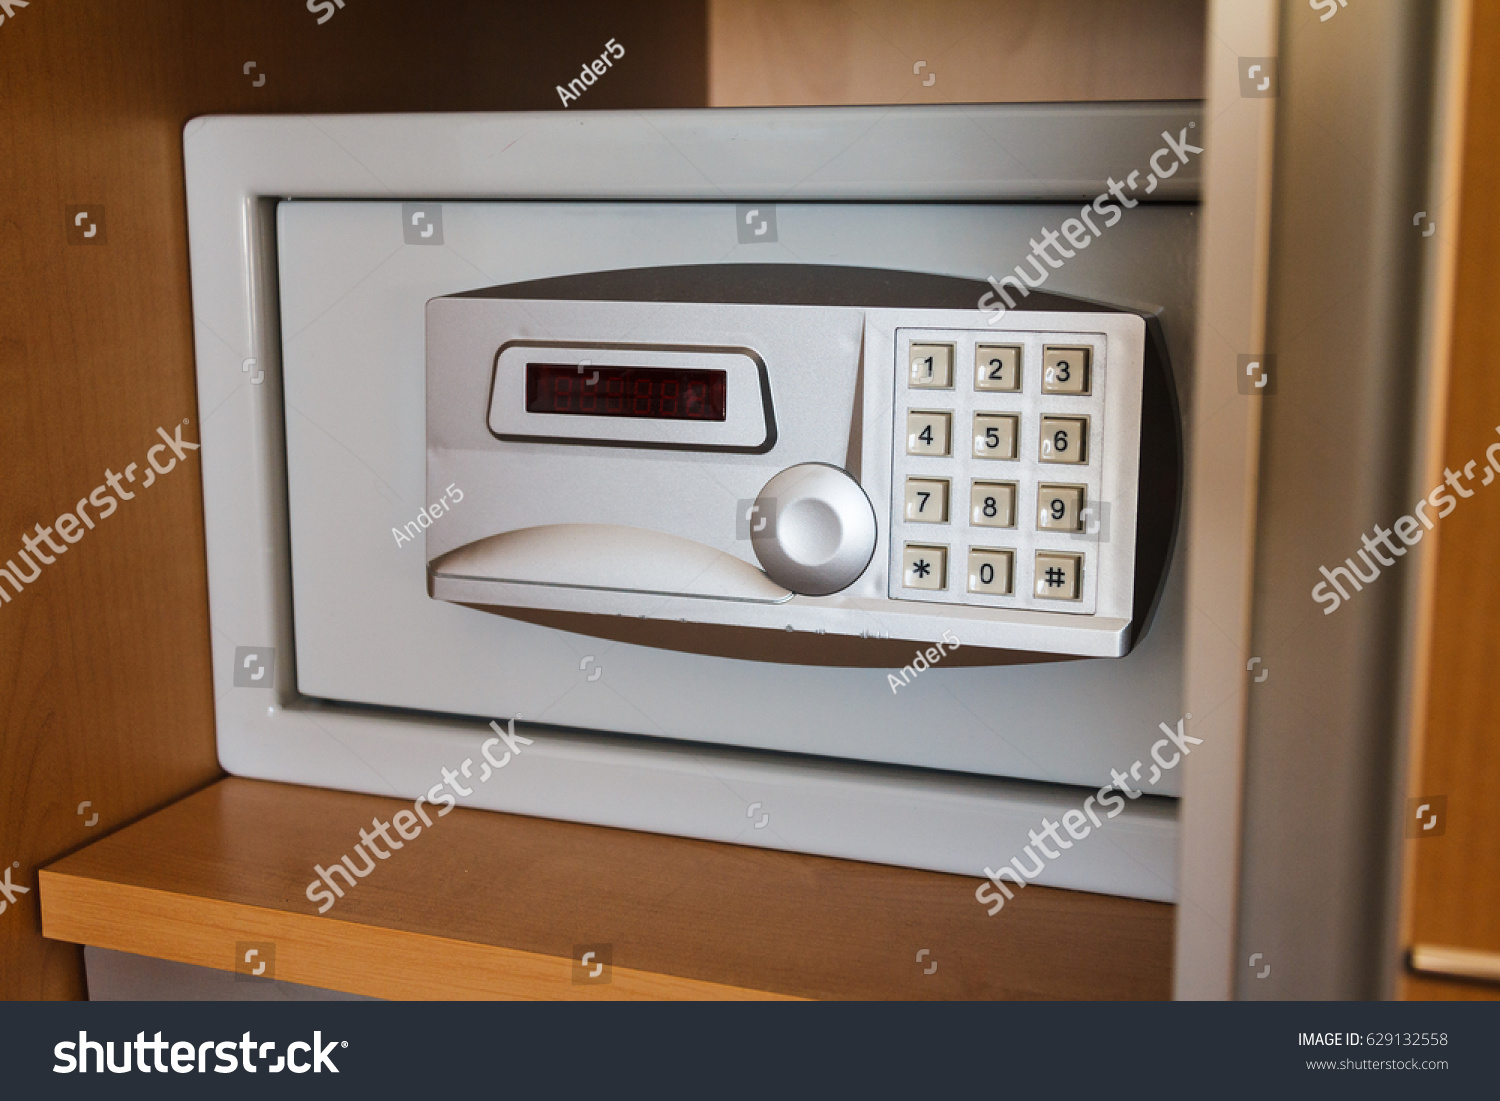 Close up of electronic hotel safe for valuables and money hidden in a  secret place of